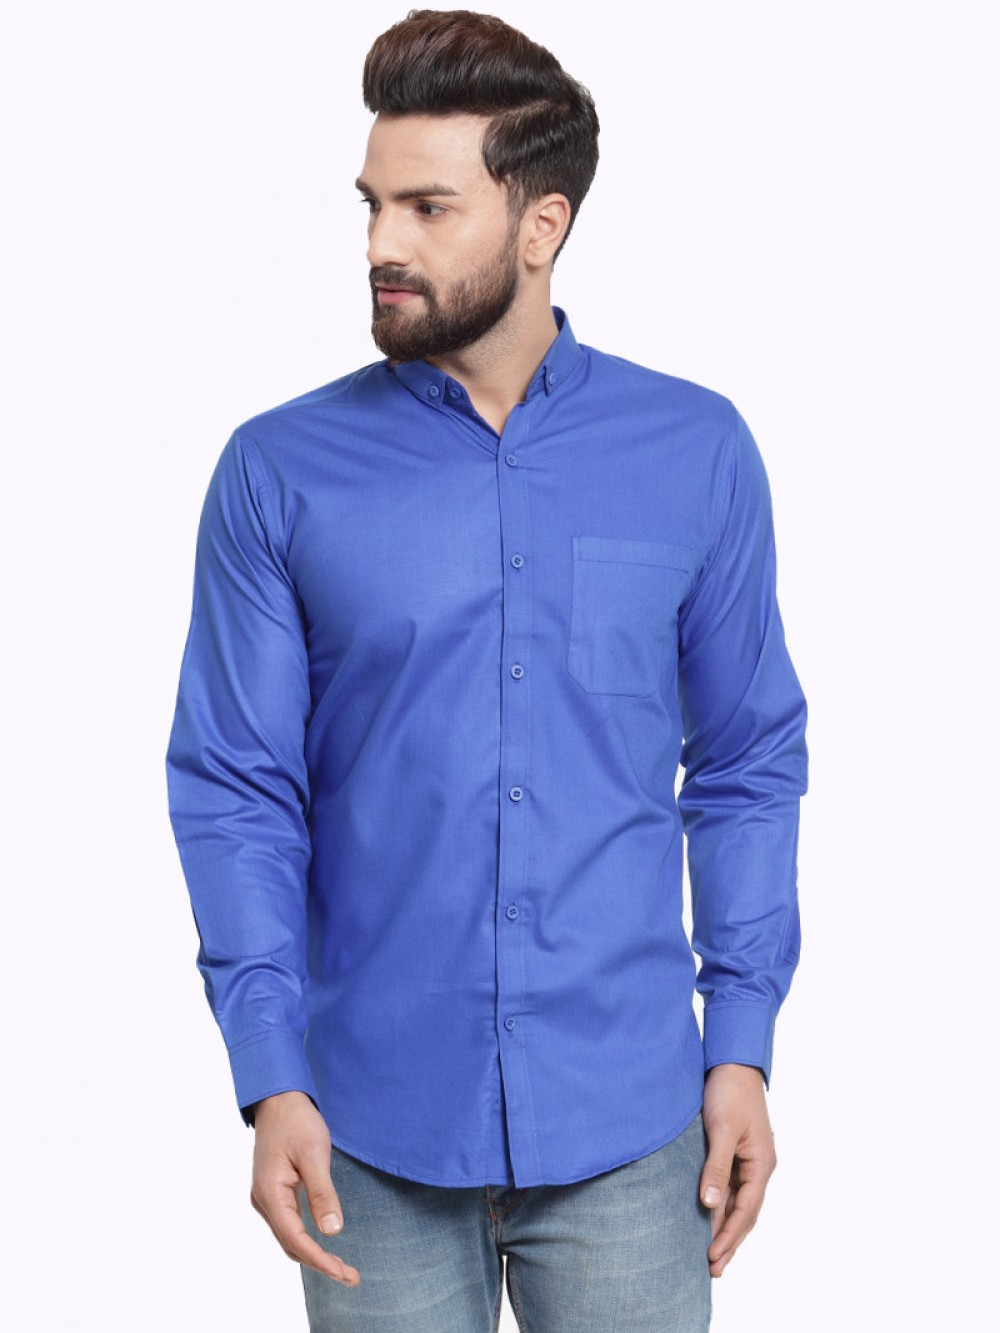 Blue Wear Full Sleeve Shirt